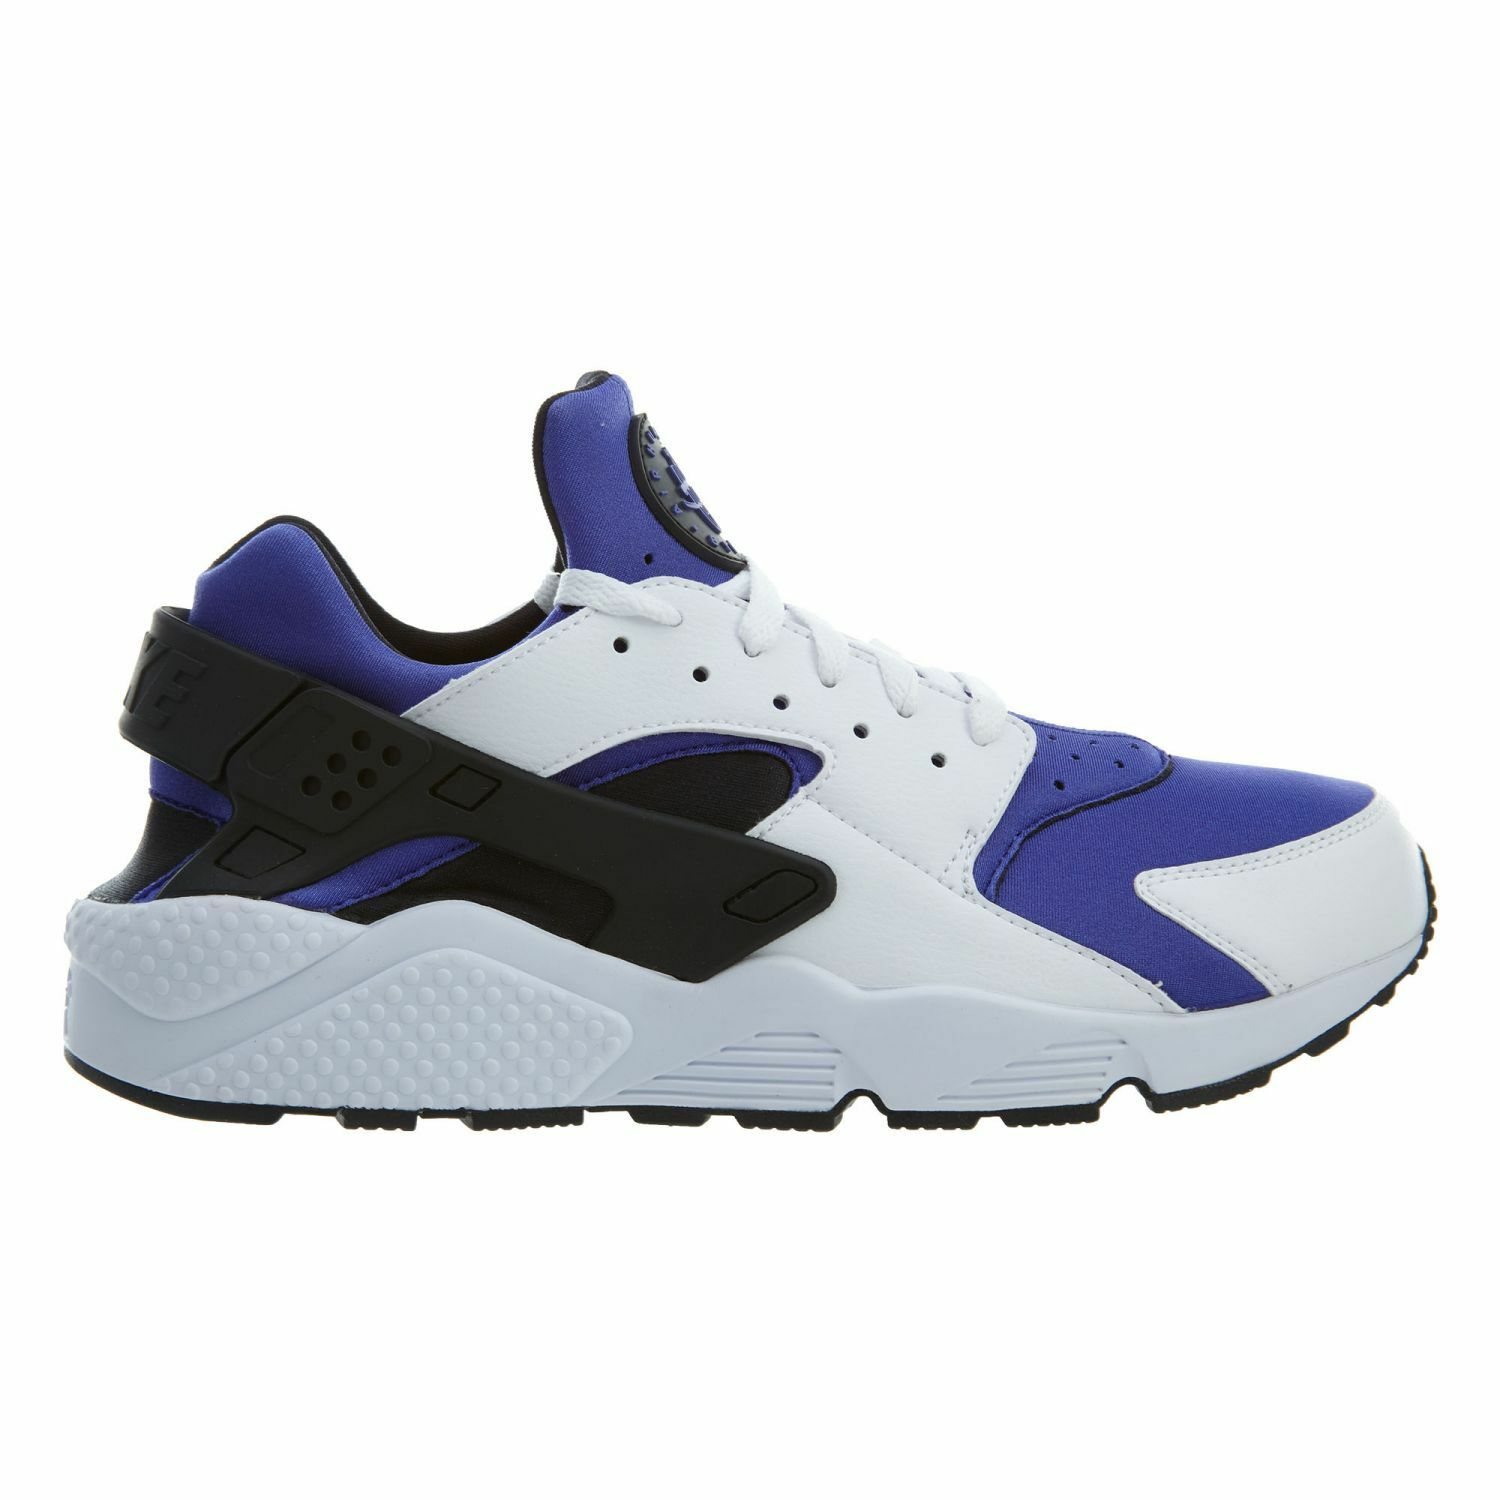 Nike Air Huarache Run SE Mens AT4254-100 AT4254-100 AT4254-100 Persian Violet White Shoes Size 13 e3bcb4